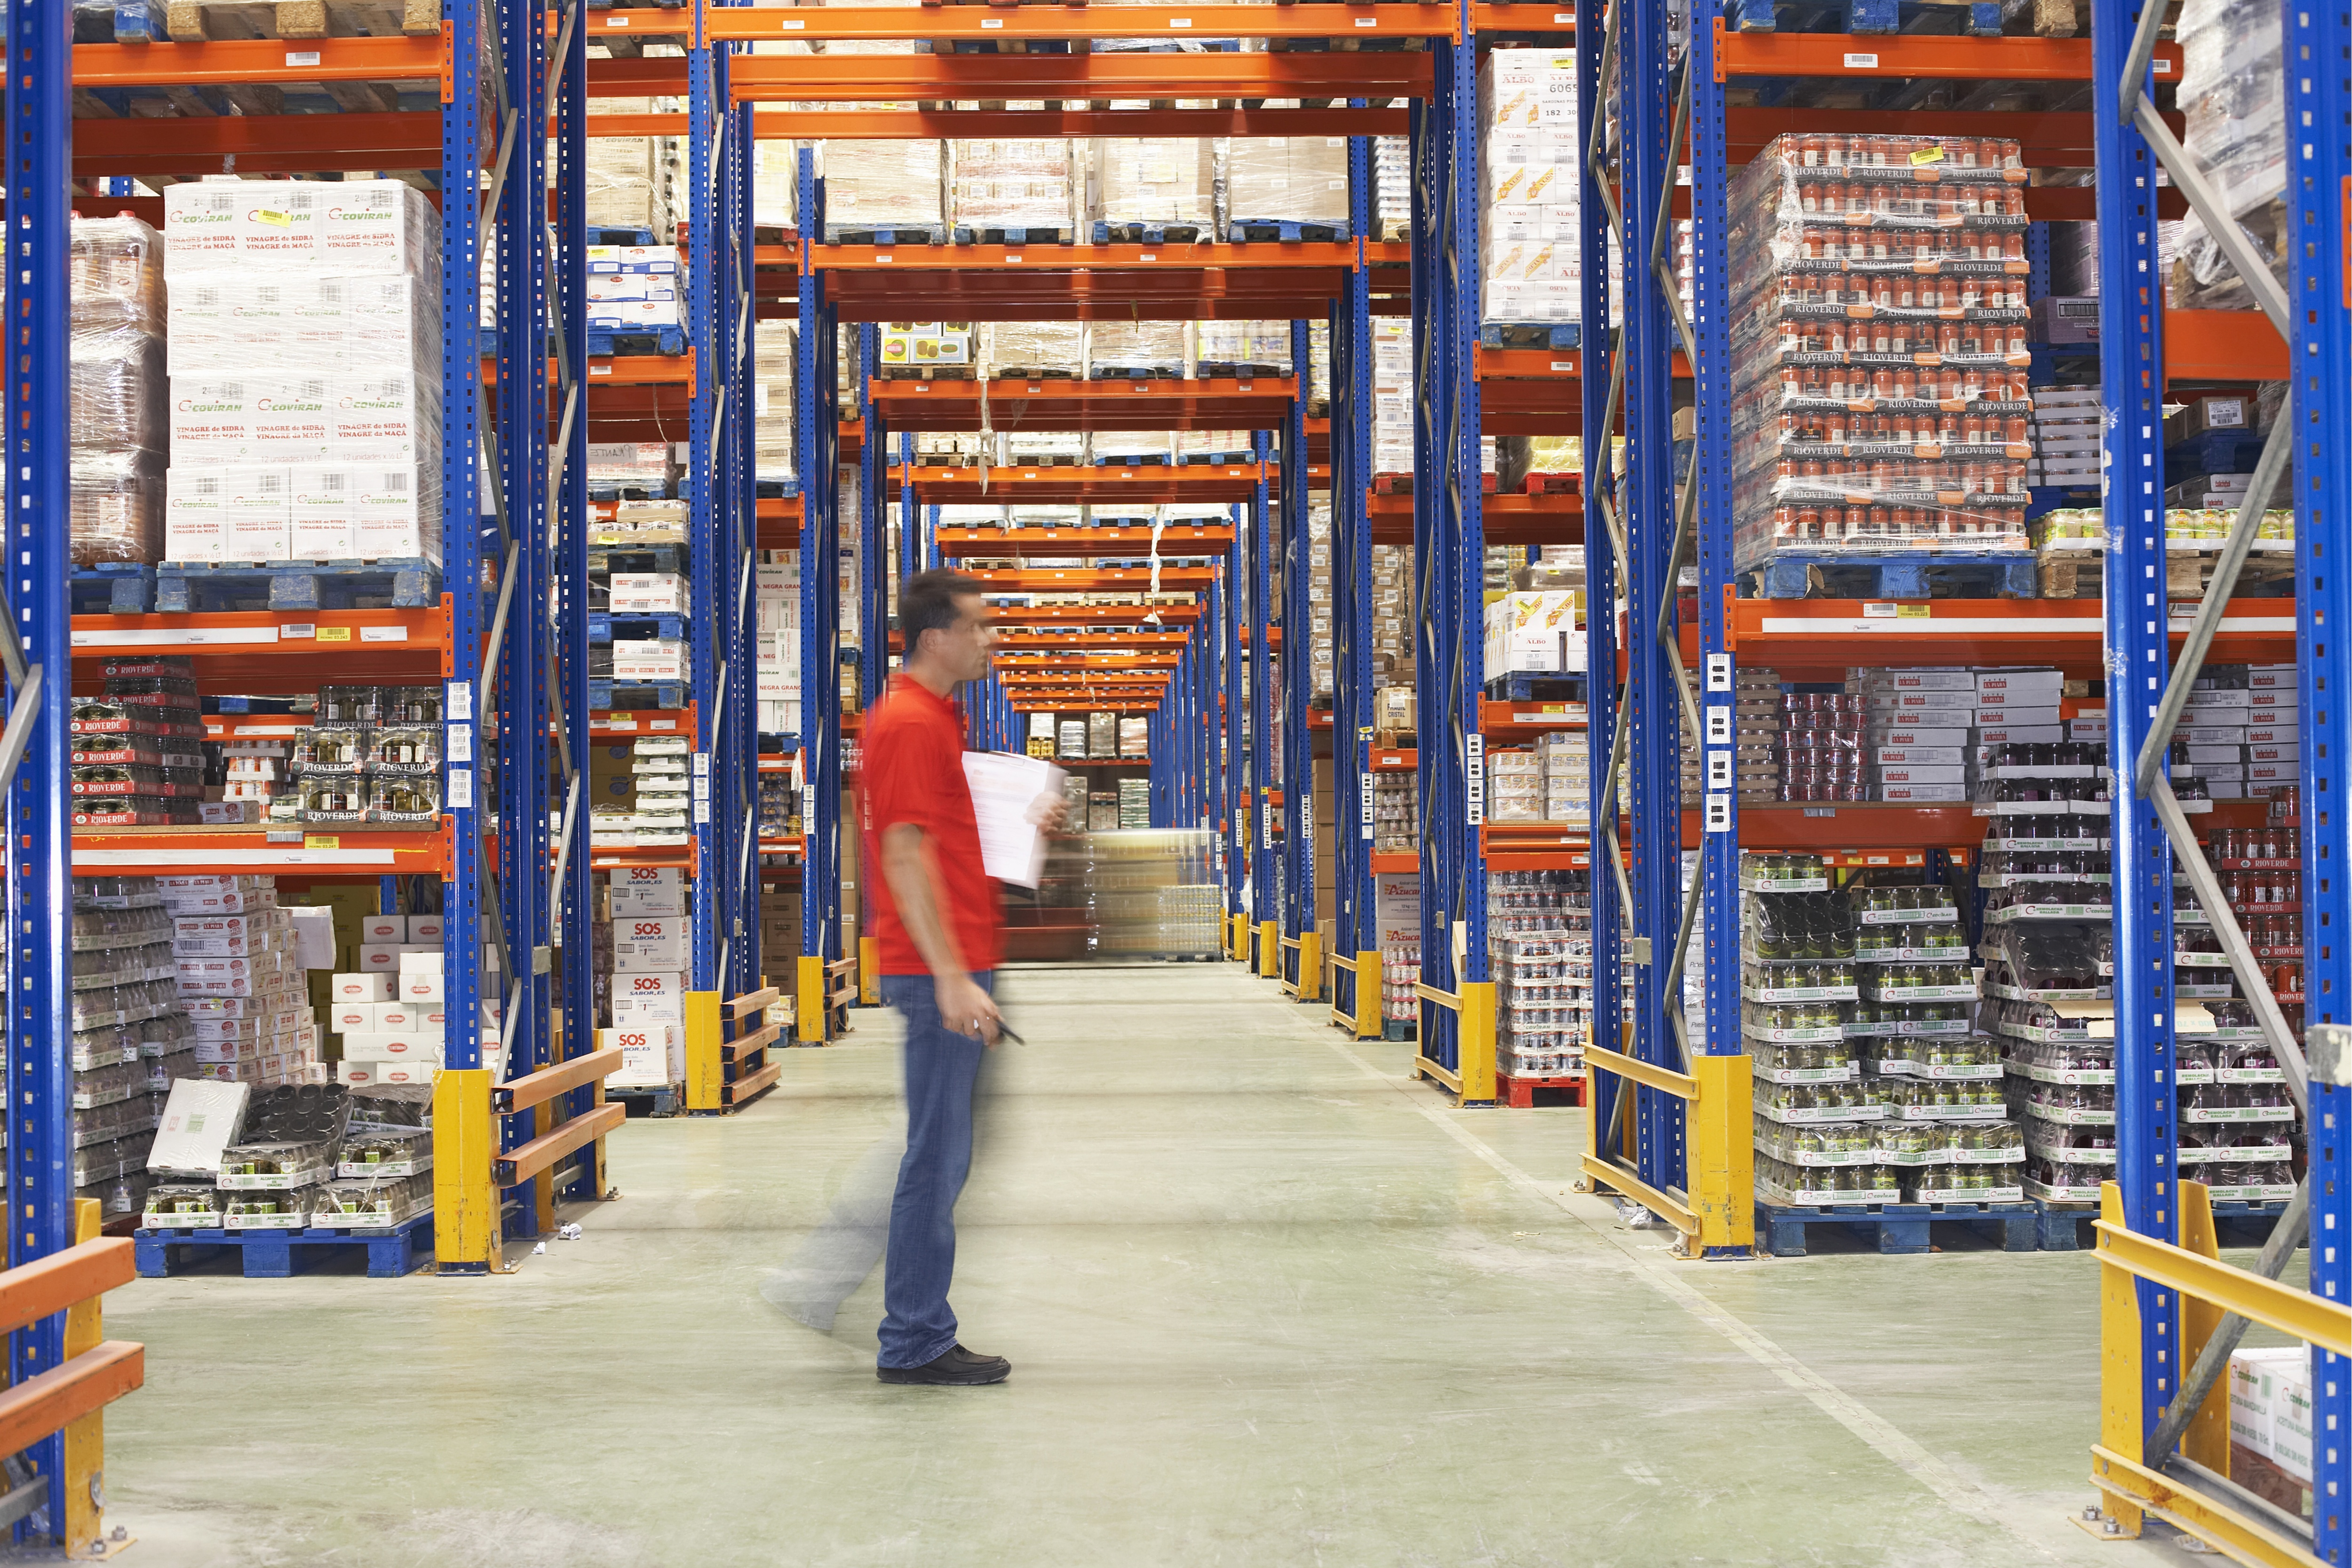 Southalls_health and safety_retail_distribution_warehousing